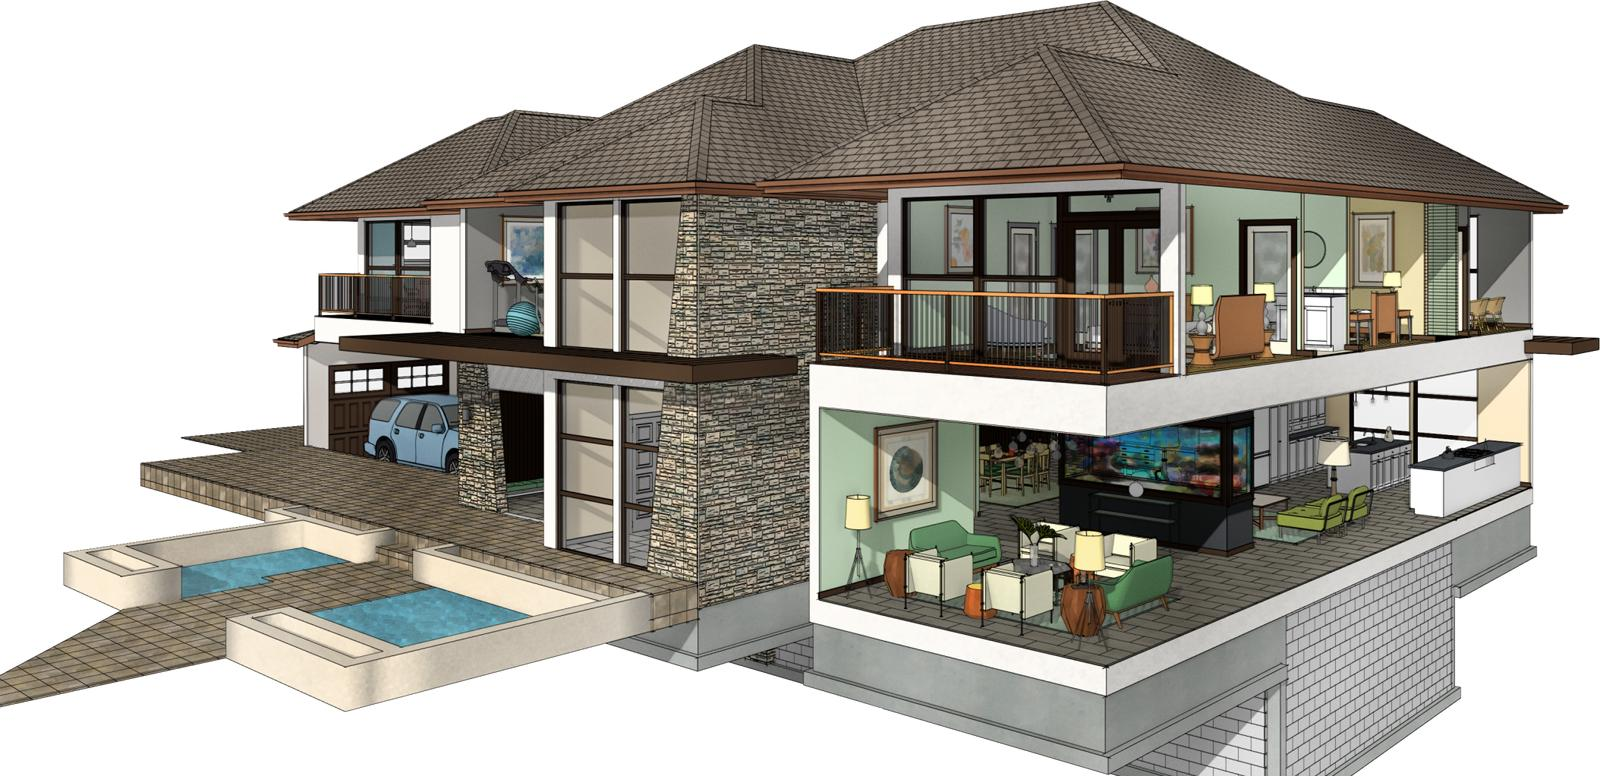 Home designer software for home design remodeling projects for Build a 3d house online